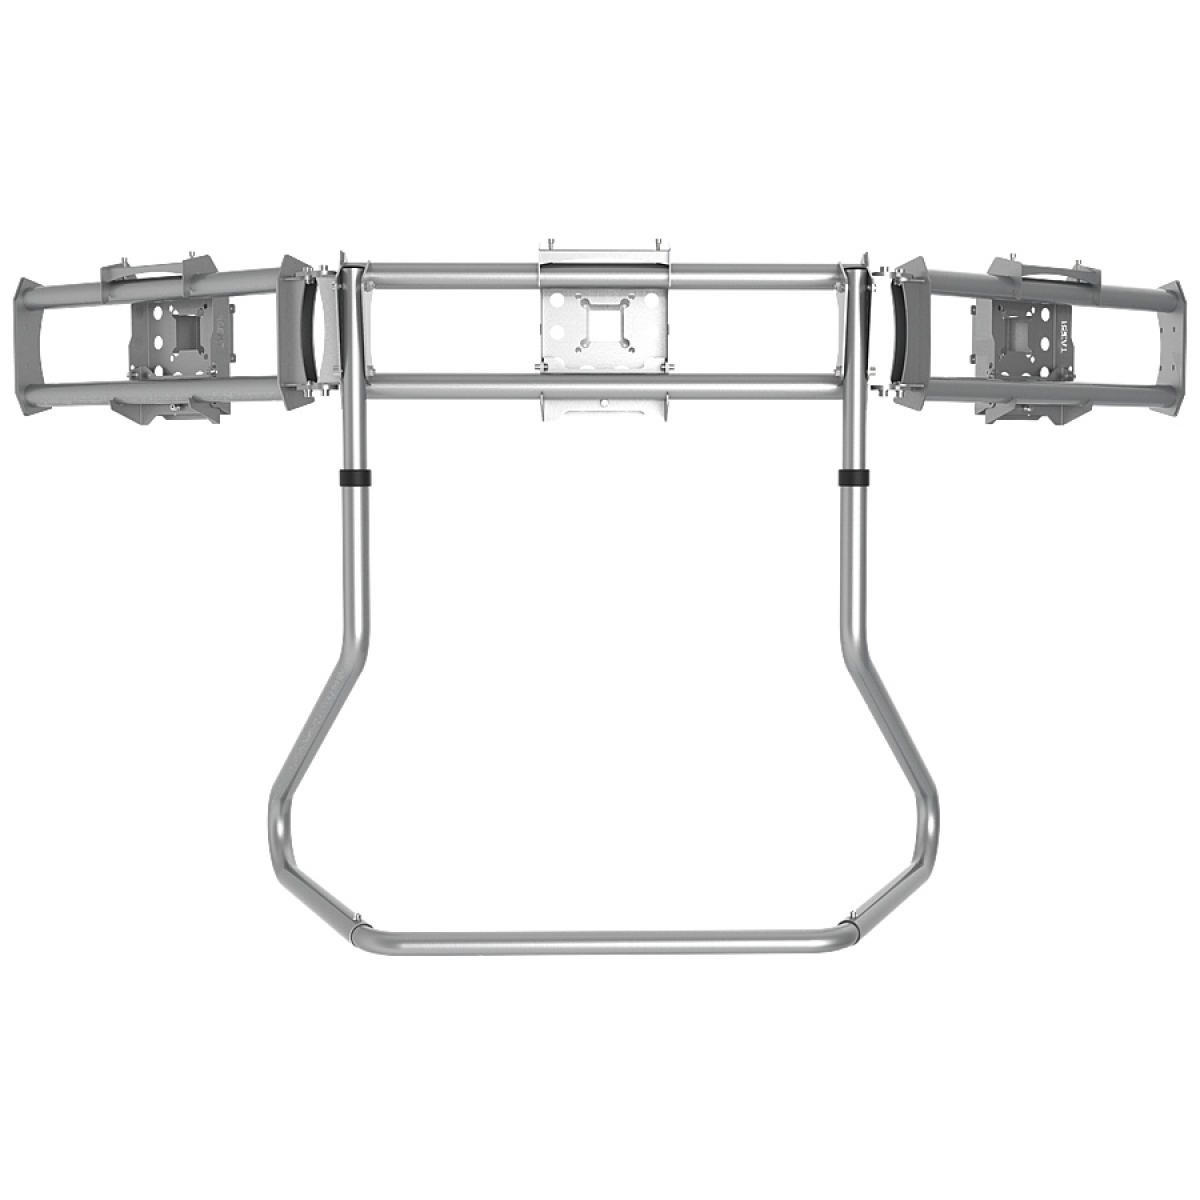 RS STAND T3XLM Silver - Triple Ultra Wide Monitor Stand up to 3x38inch